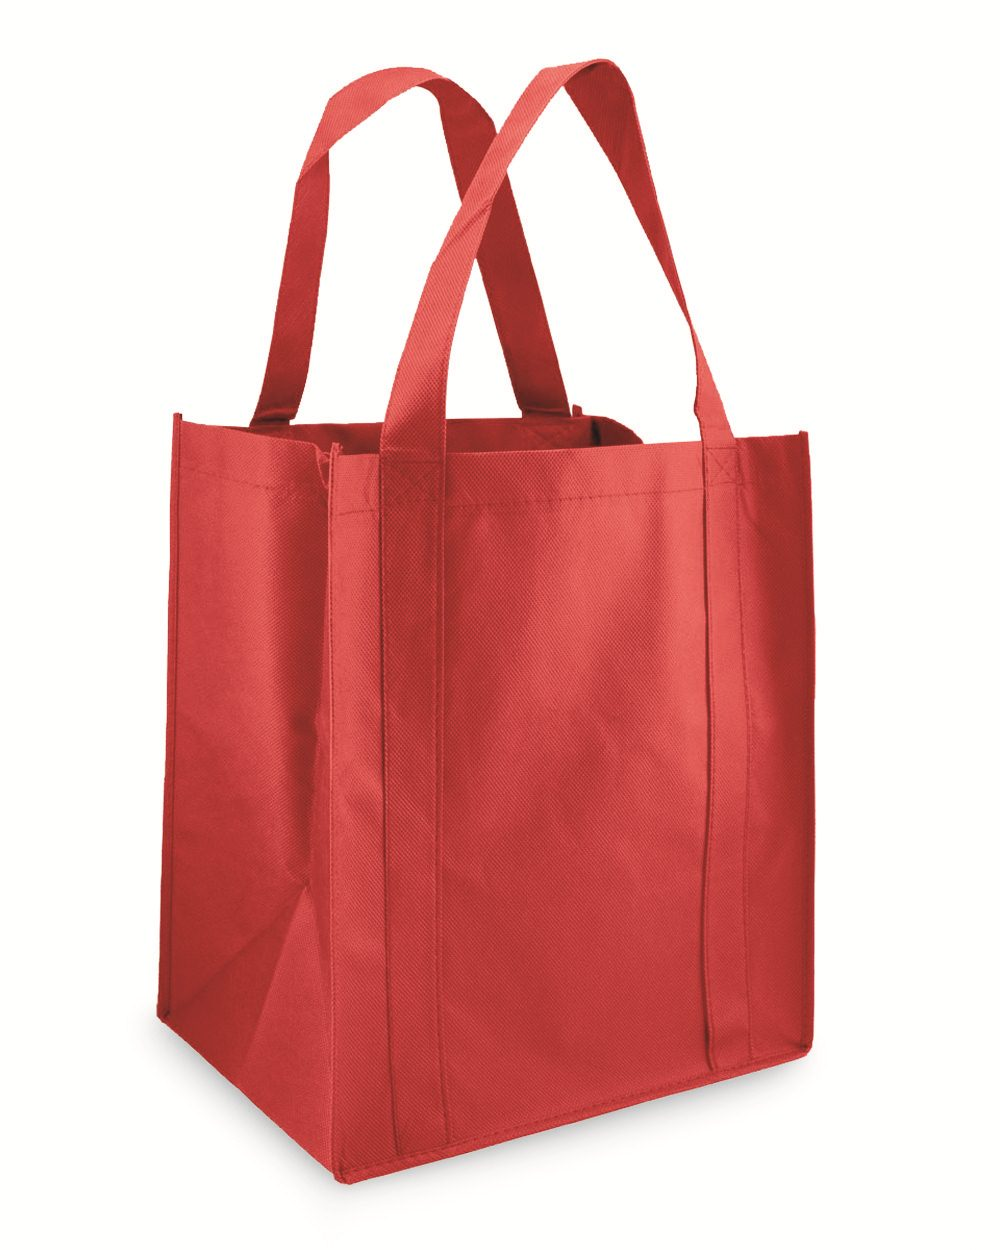 Valubag Non-Woven Large Shopping Bag - VB0912